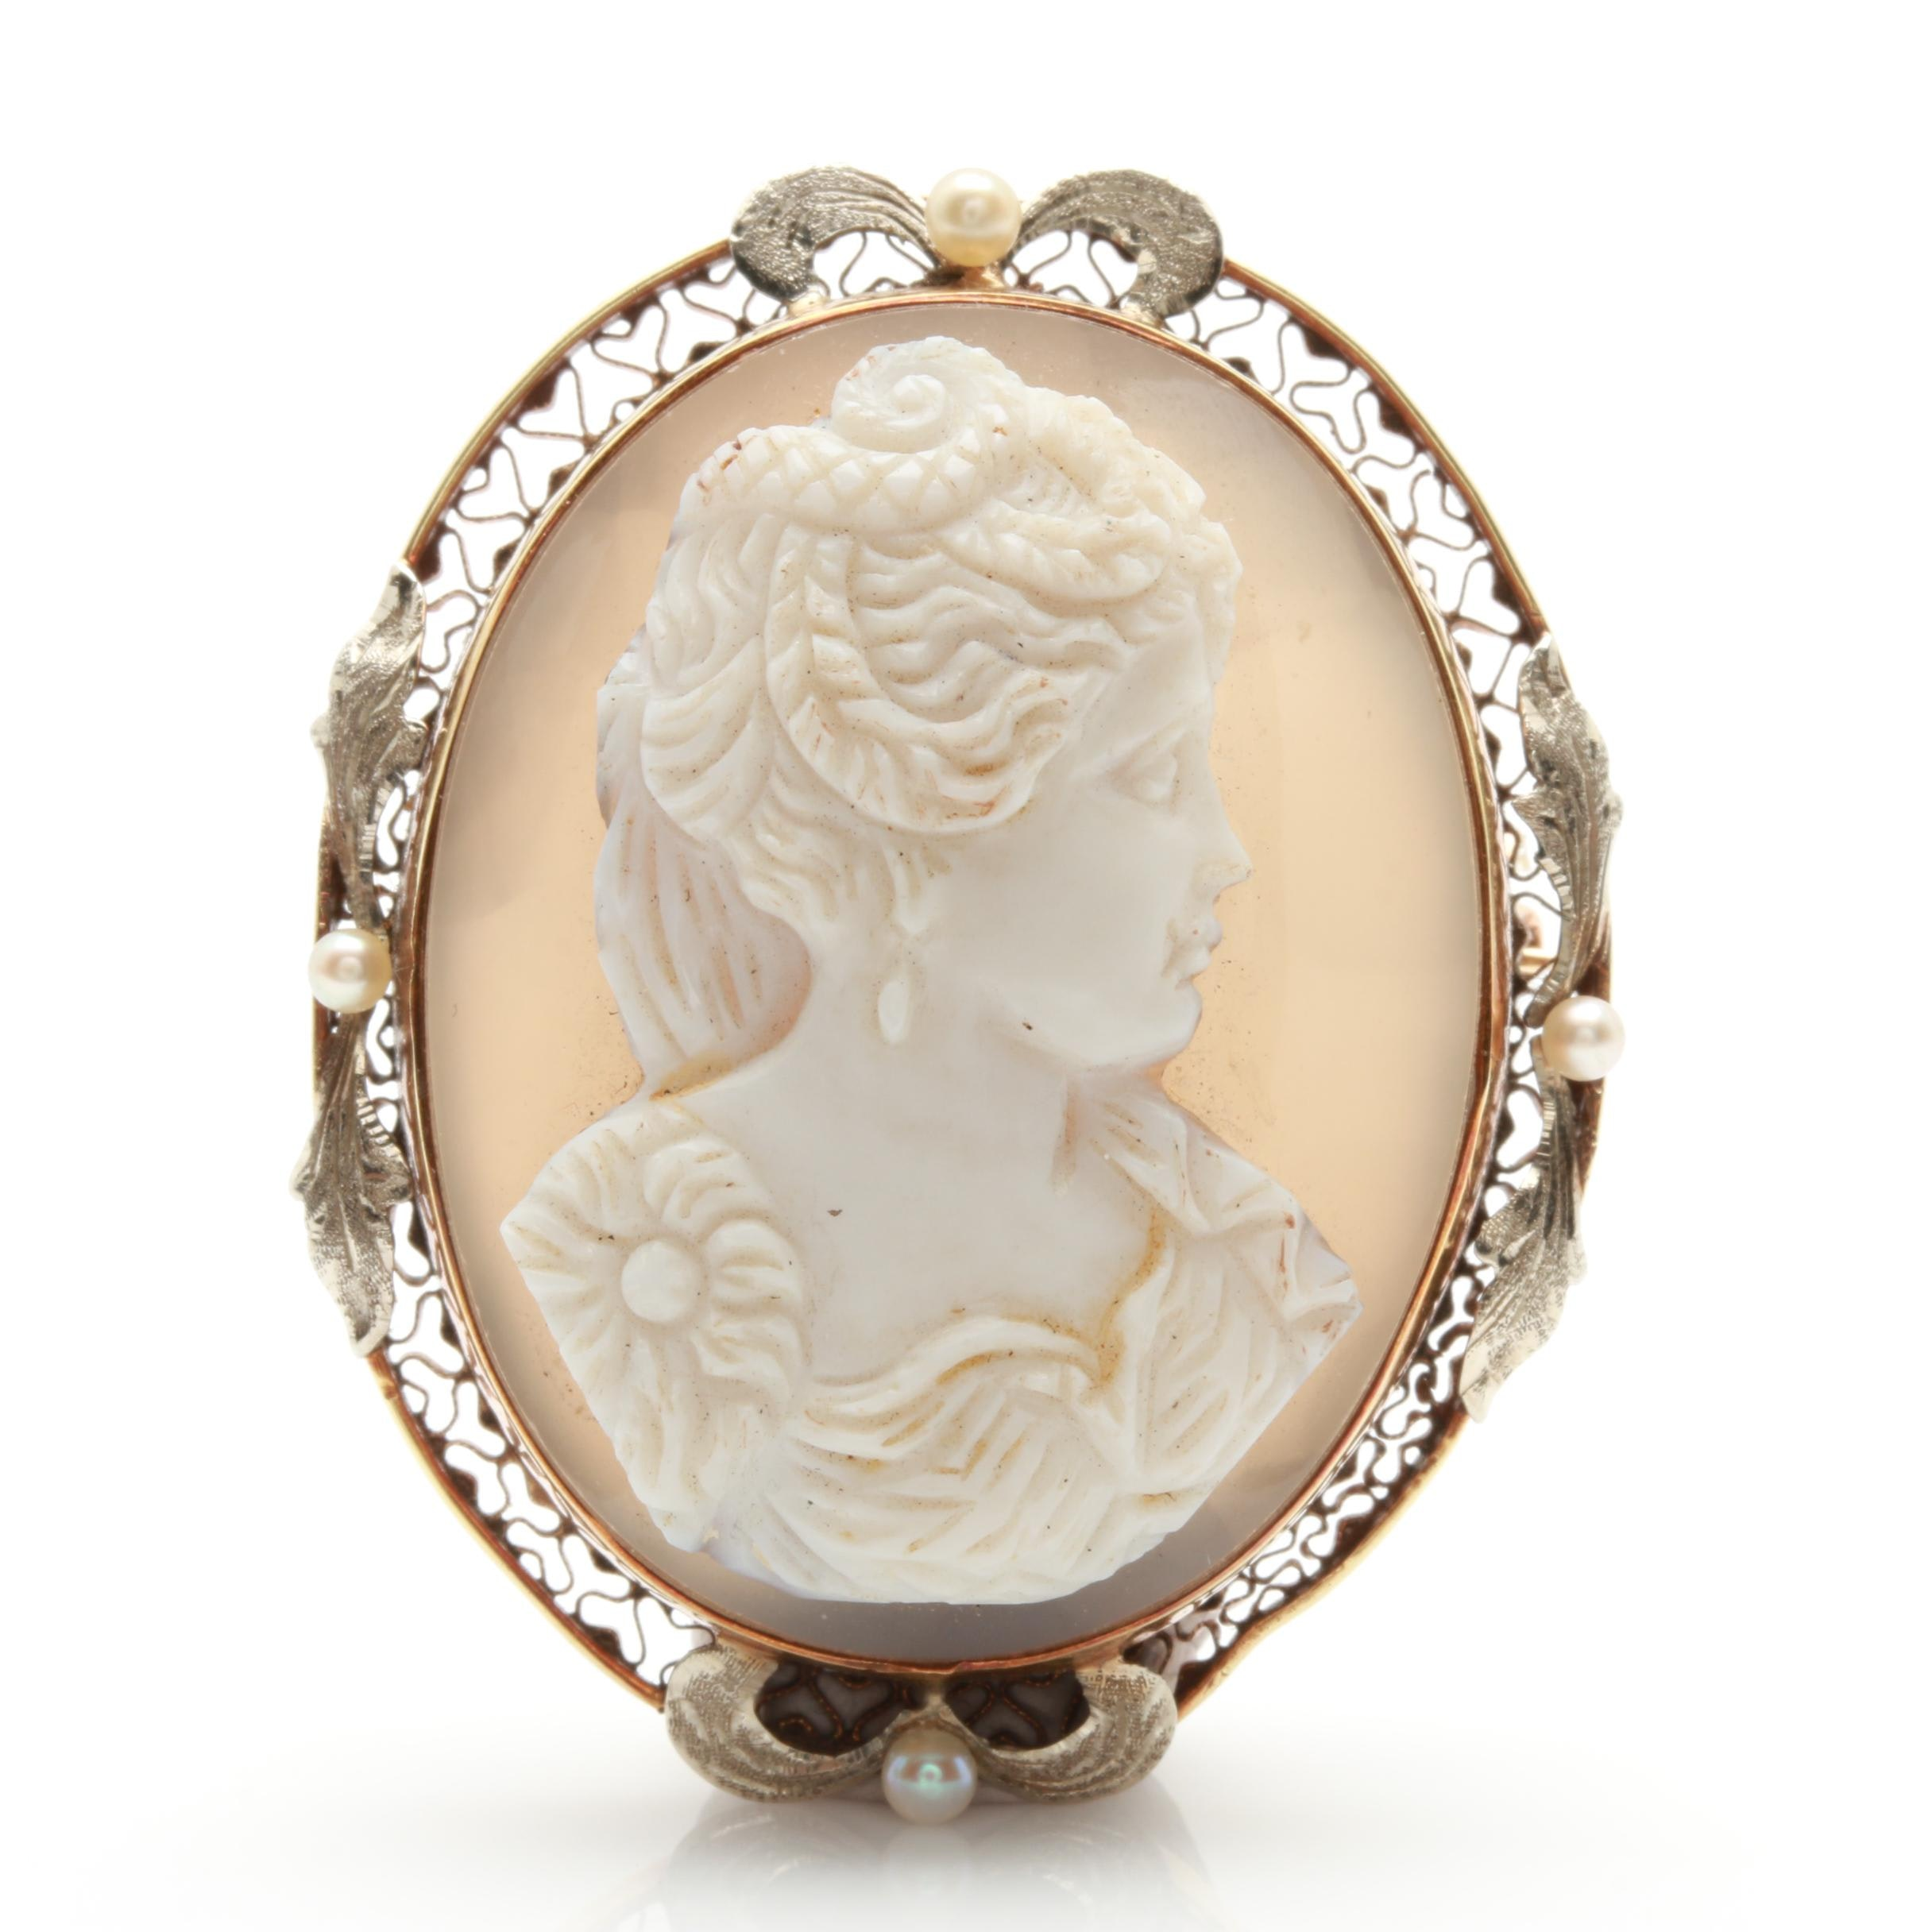 Belle Époque 14K Yellow Gold Agate and Seed Pearl Cameo Converter Brooch